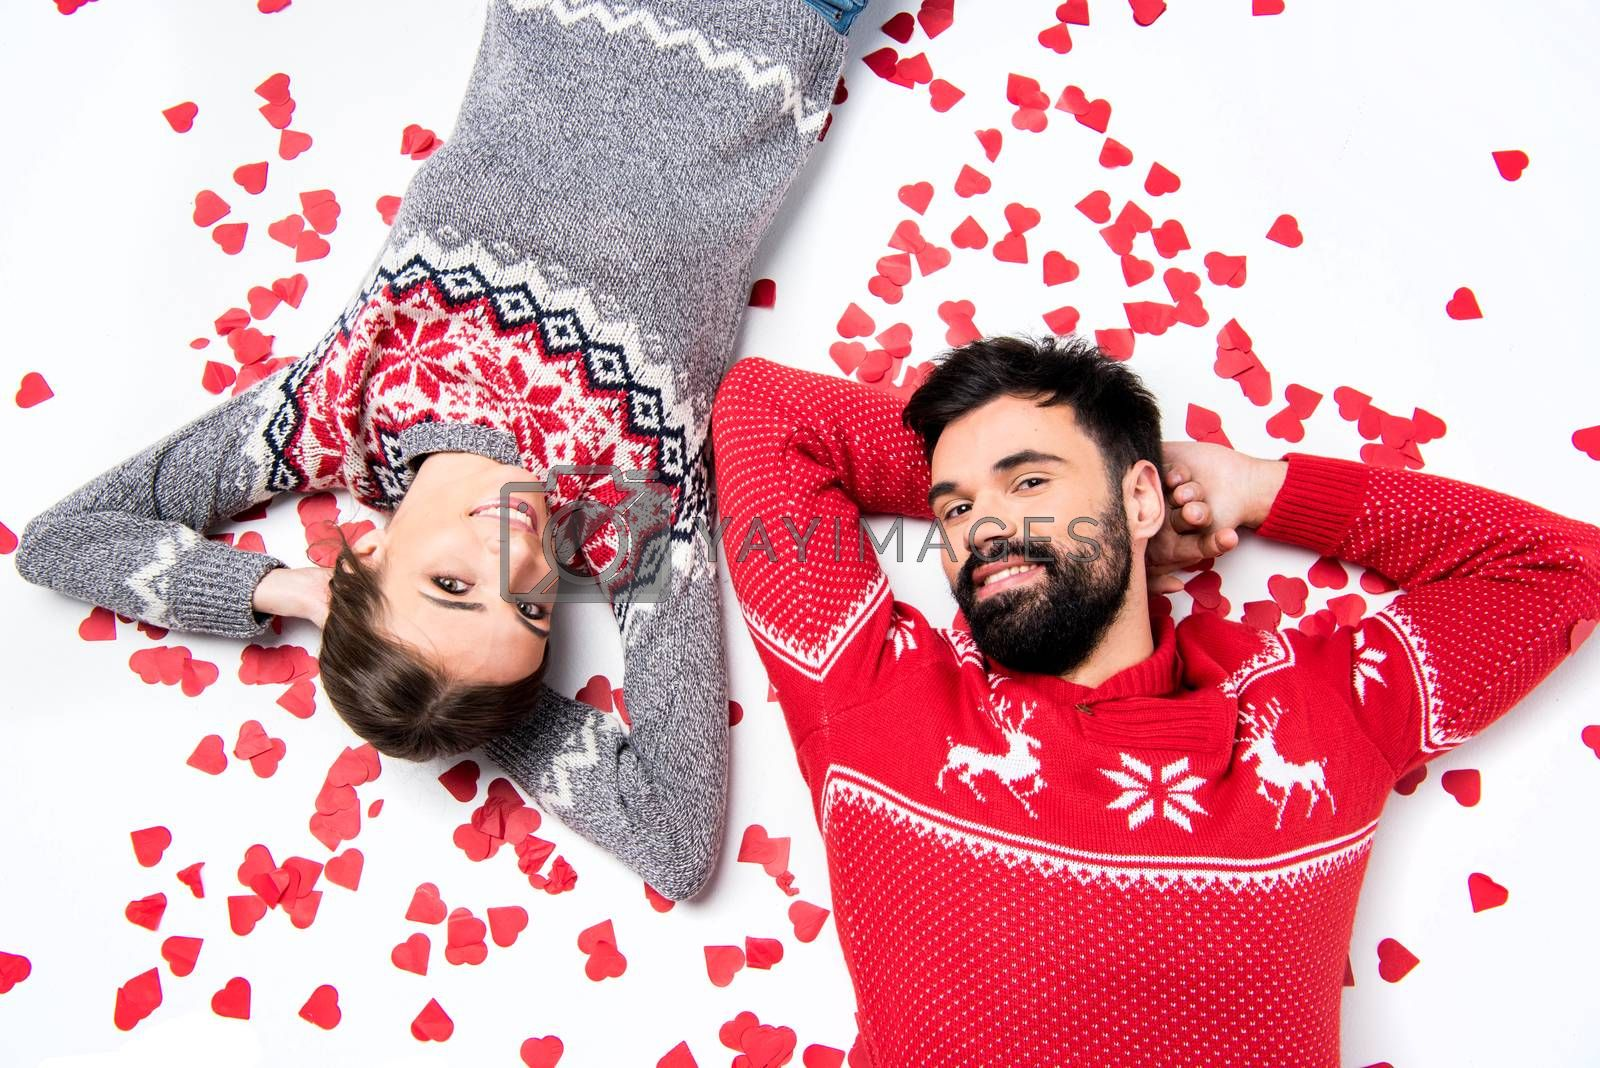 Loving couple lying together on white floor with pile of red hearts